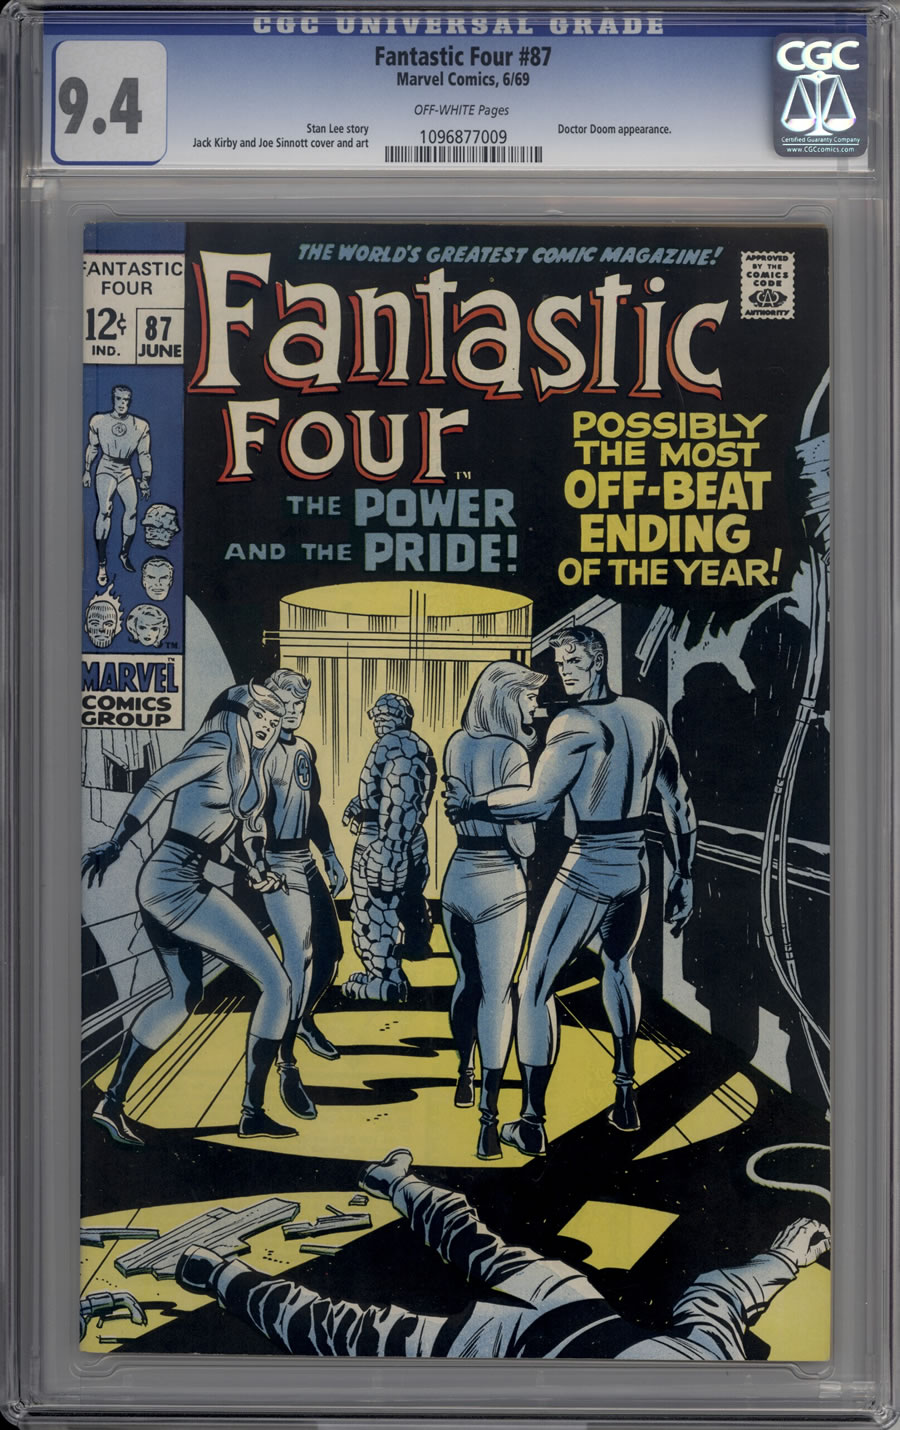 FANTASTIC FOUR # 87, 9.4 NM CGC